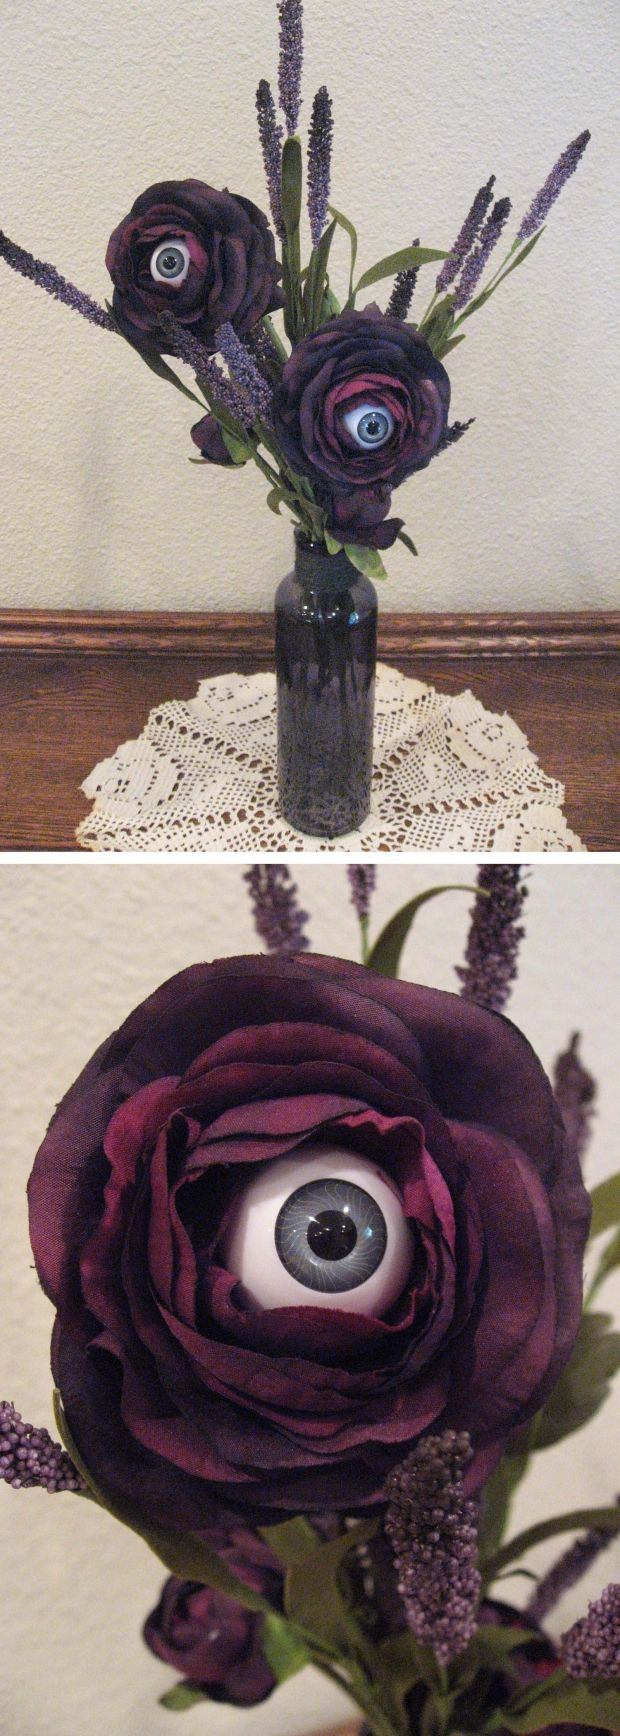 Spray paint red roses and add an eyeball from the craft store for Living Dead Flower Bouquet.